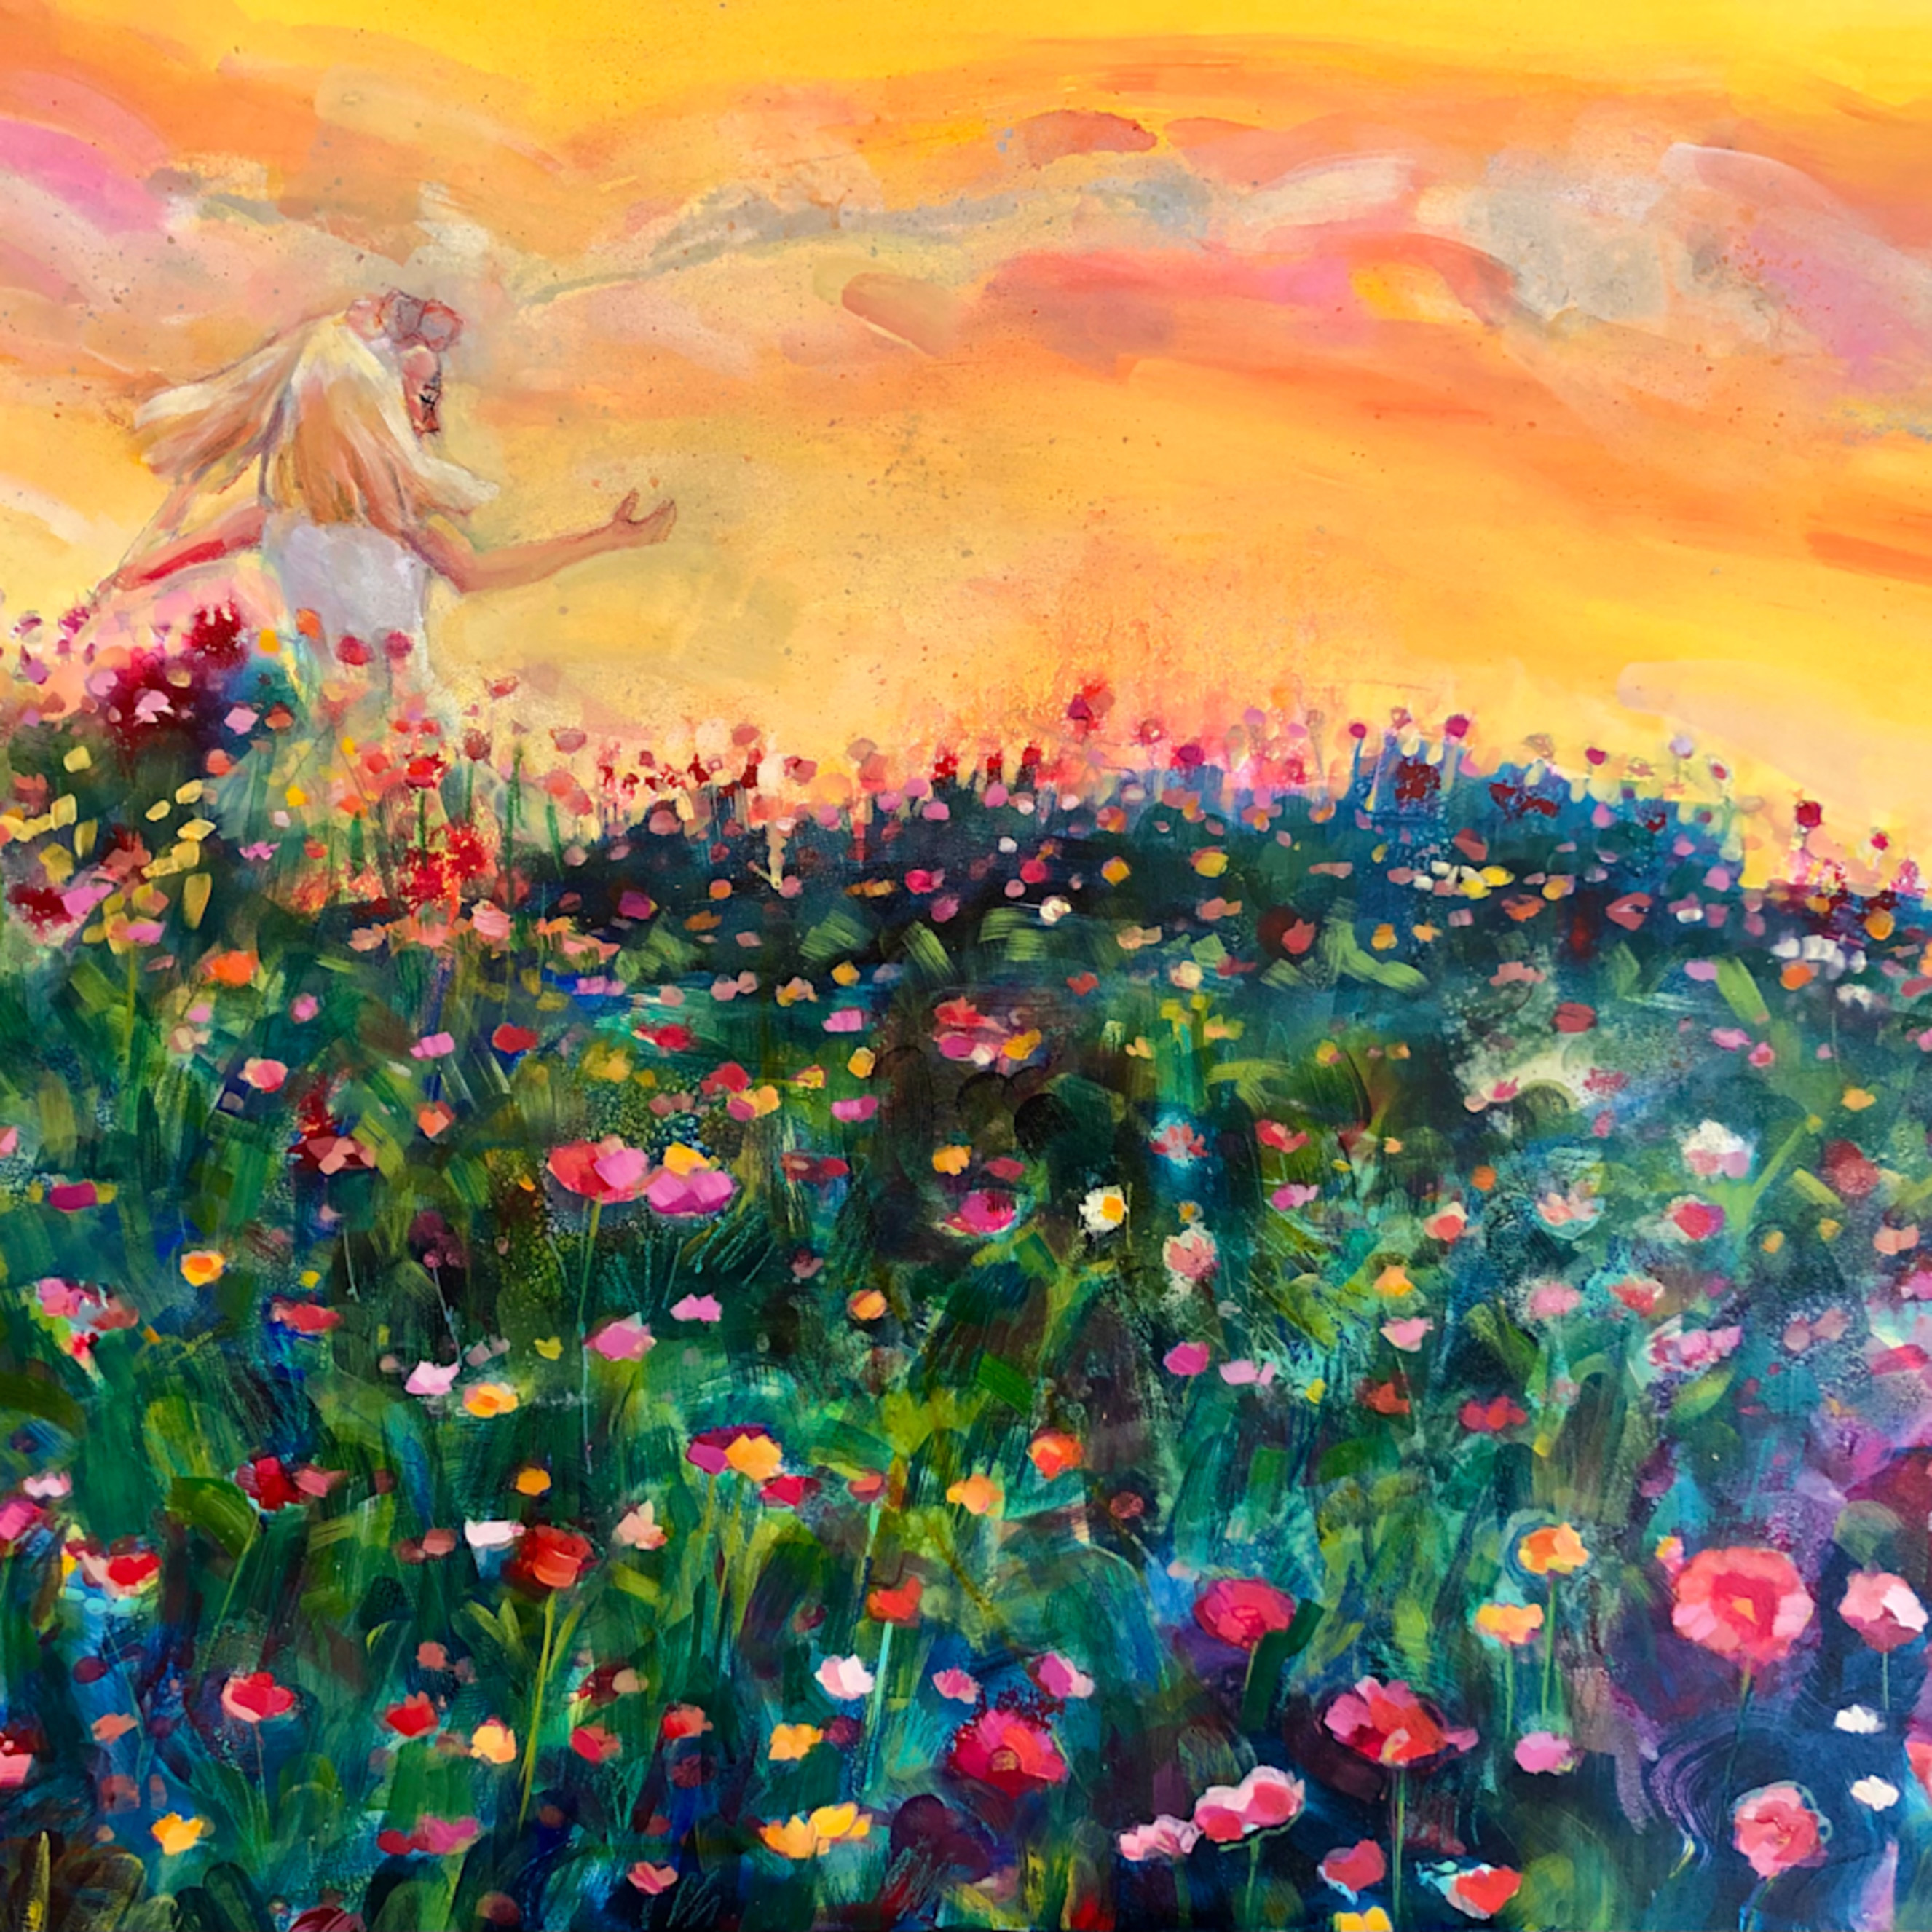 Glorious journey oil and mixed media on panel 24x36 jxar46